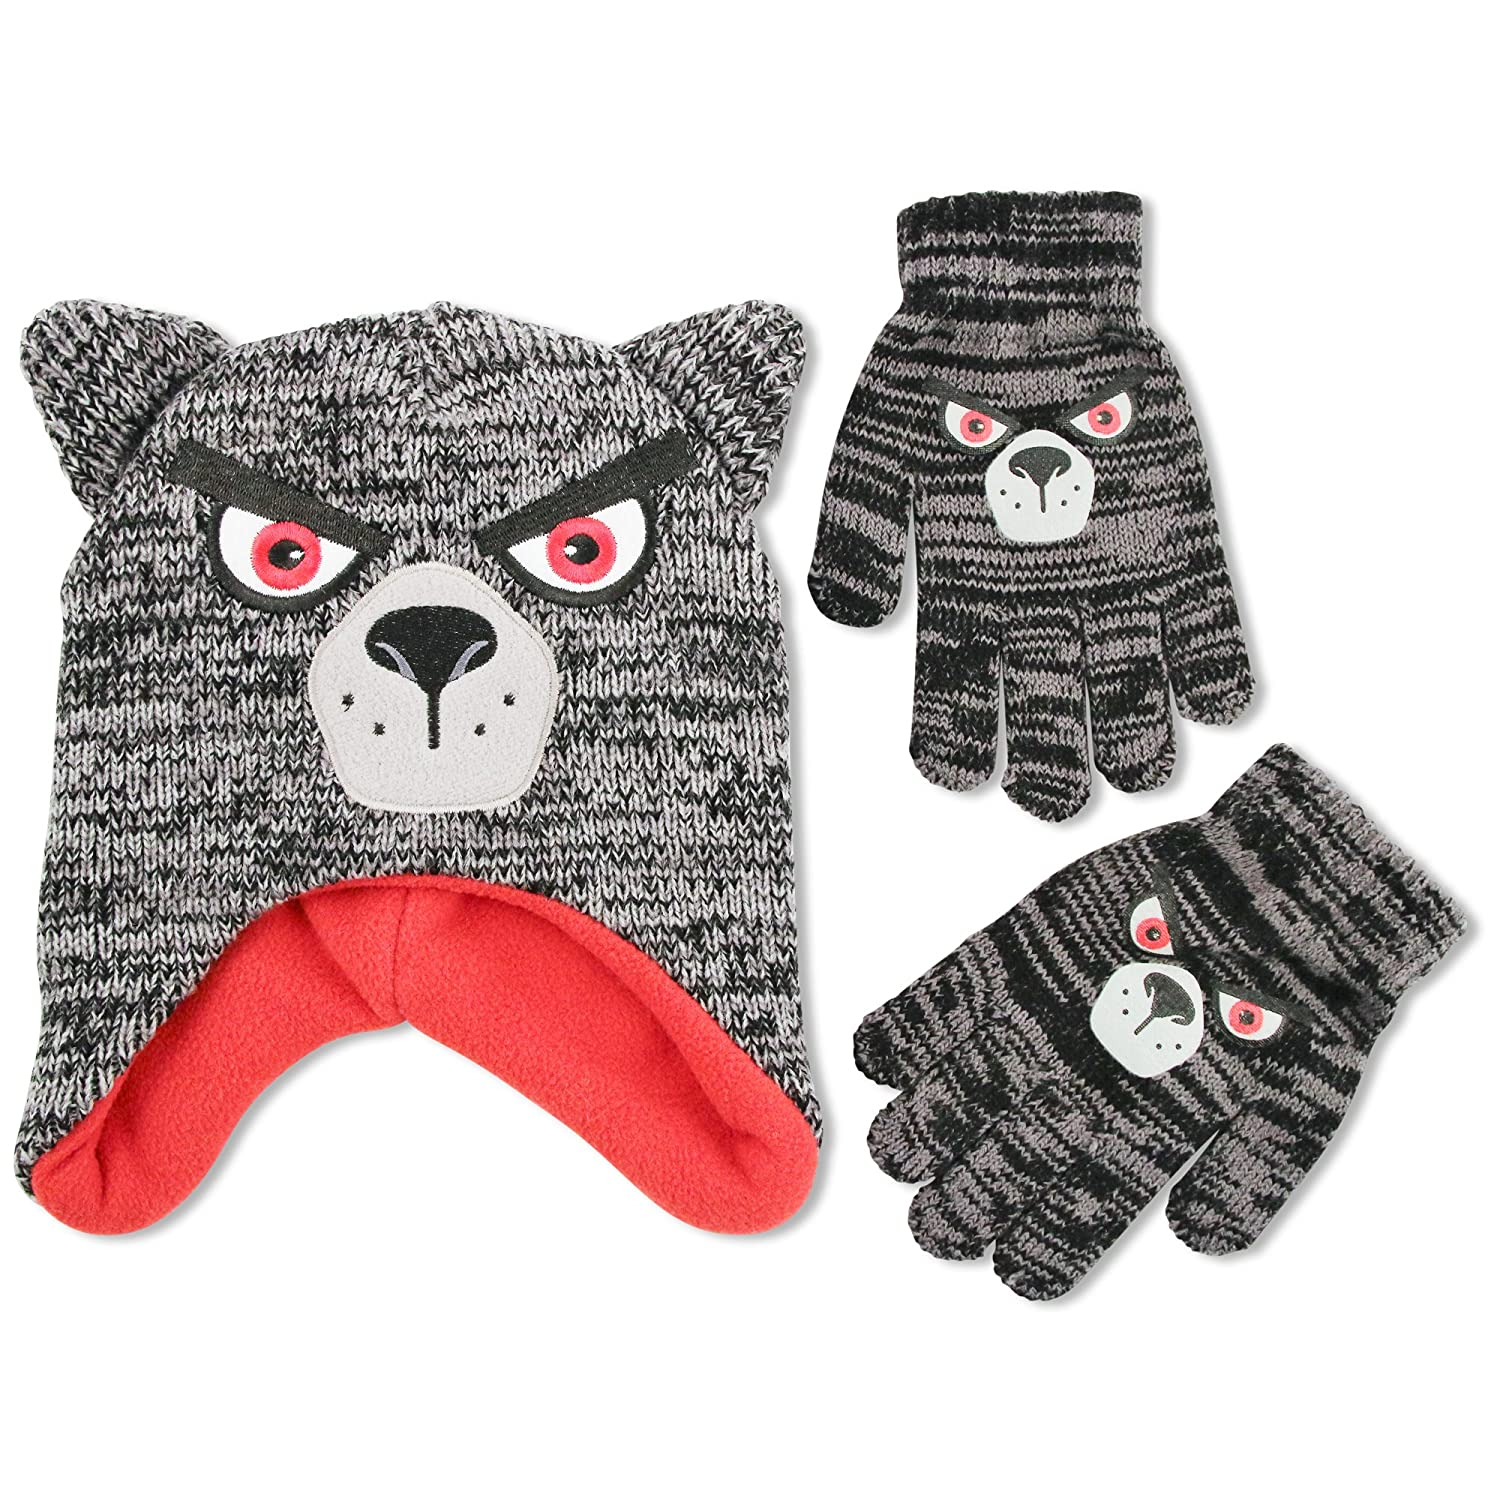 Age 4-7 ABG Accessories Little Boys Wolf Critter Hat and Glove Cold Weather Set